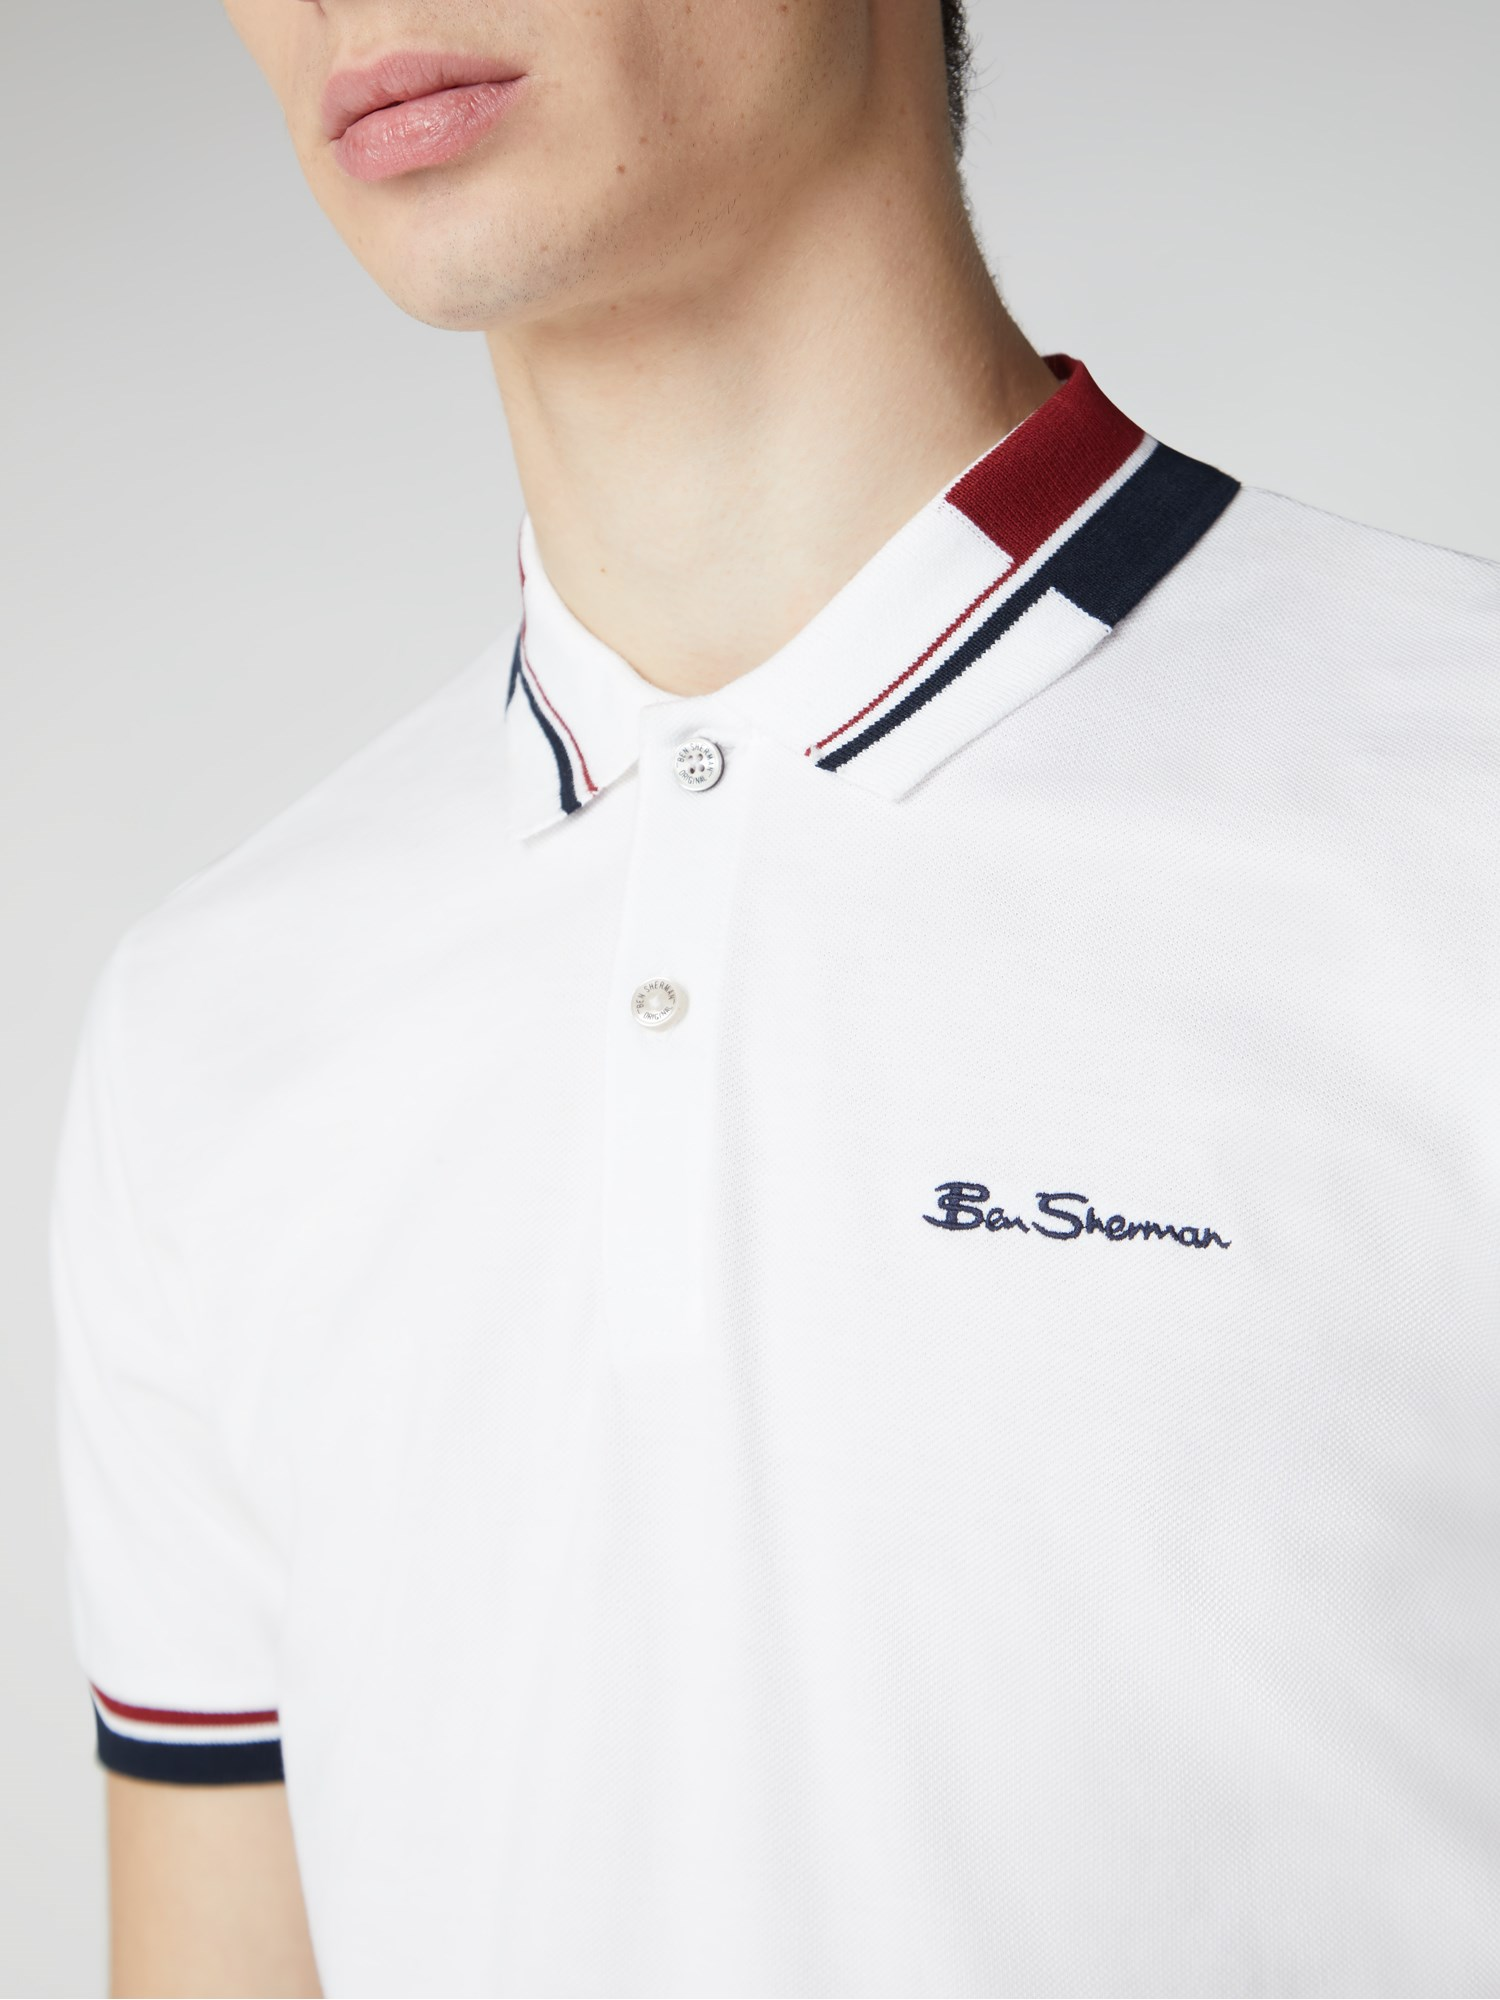 Ben Sherman Polo Shirt Men/'s Regular Fit Navy-170 Jacquard Collar 0062868T